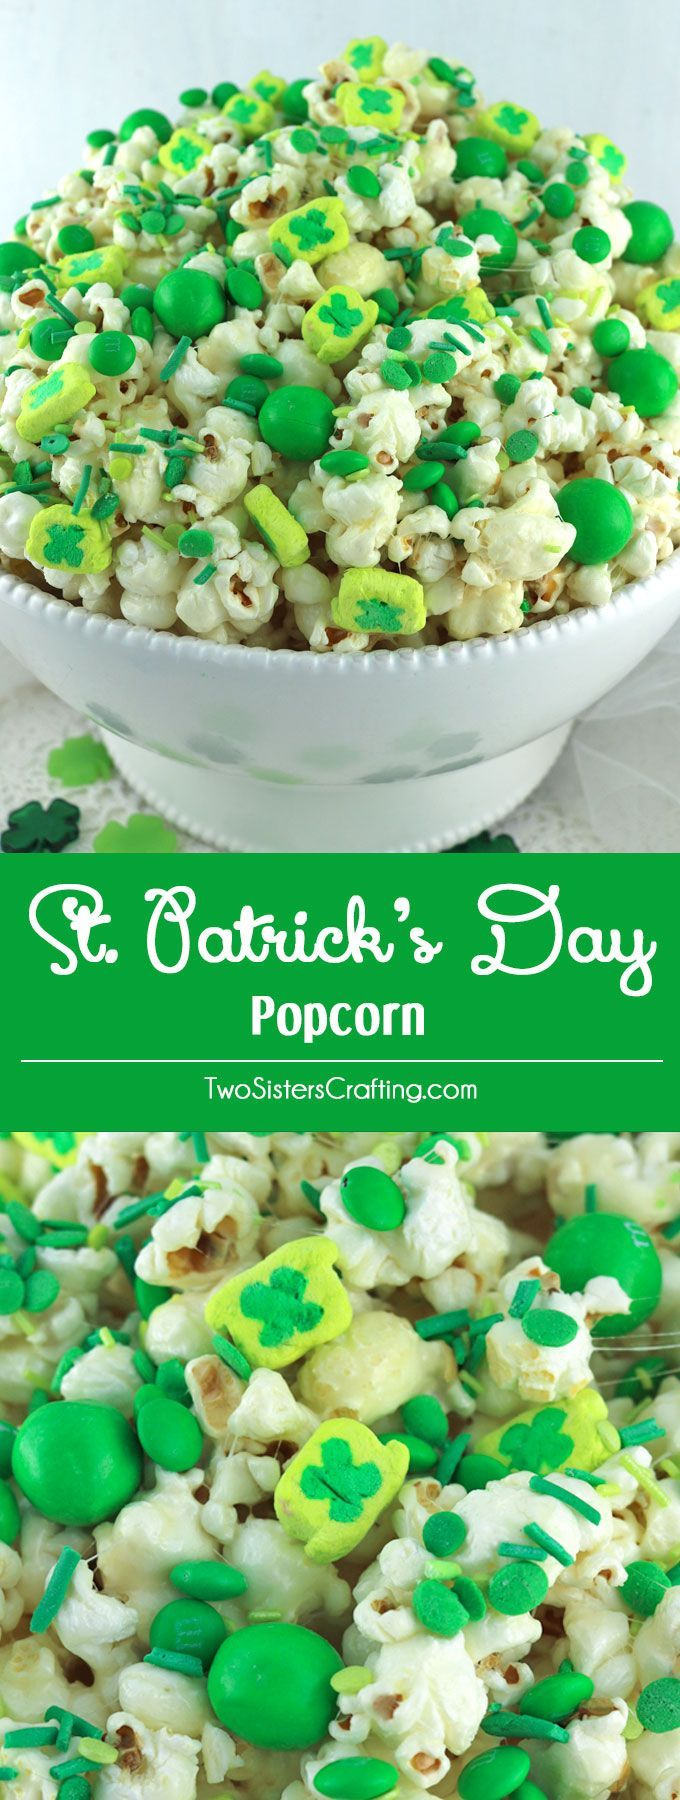 St. Patrick's Day Popcorn - a fun St. Patrick's Day treat. Sweet, salty, crunchy and delicious and it is so easy to make. You won't need the luck of the Irish to make this easy St. Patrick's Day dessert.